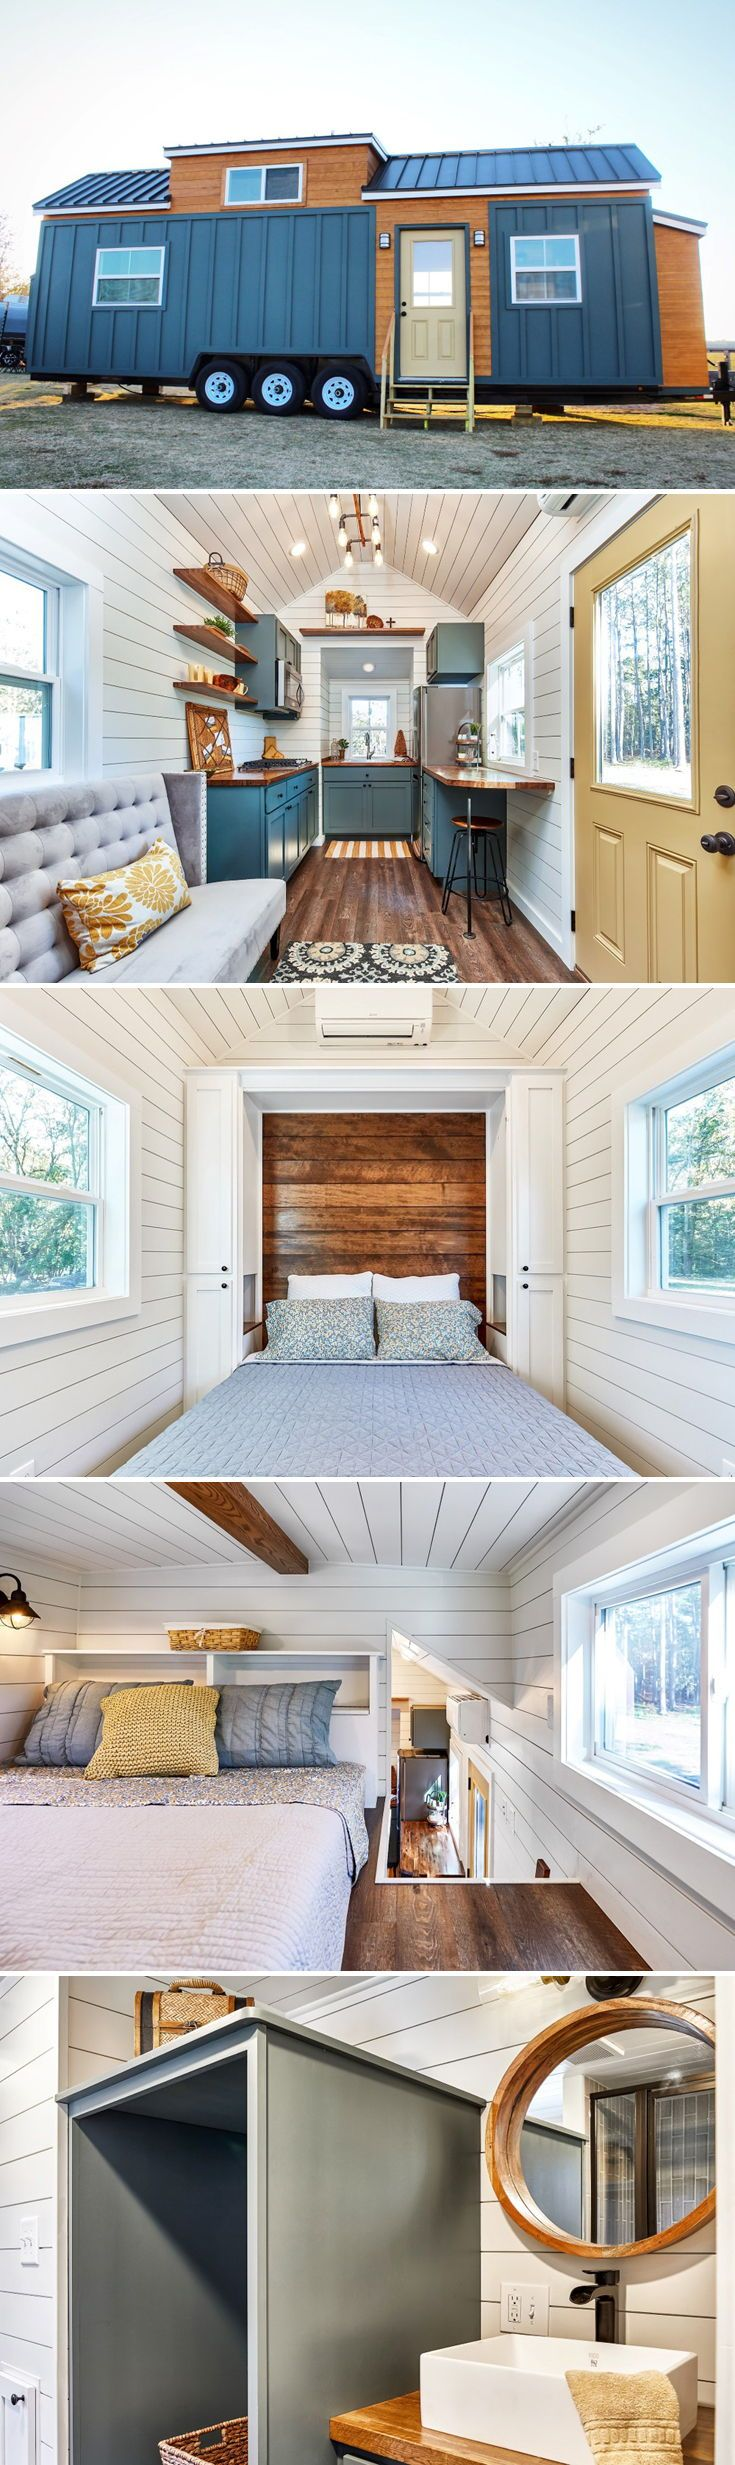 Built by Mustard Seed Tiny Homes, the Cypress is a two bedroom tiny house featuring a main floor master bedroom with Murphy bed that converts into a desk to create an office space.